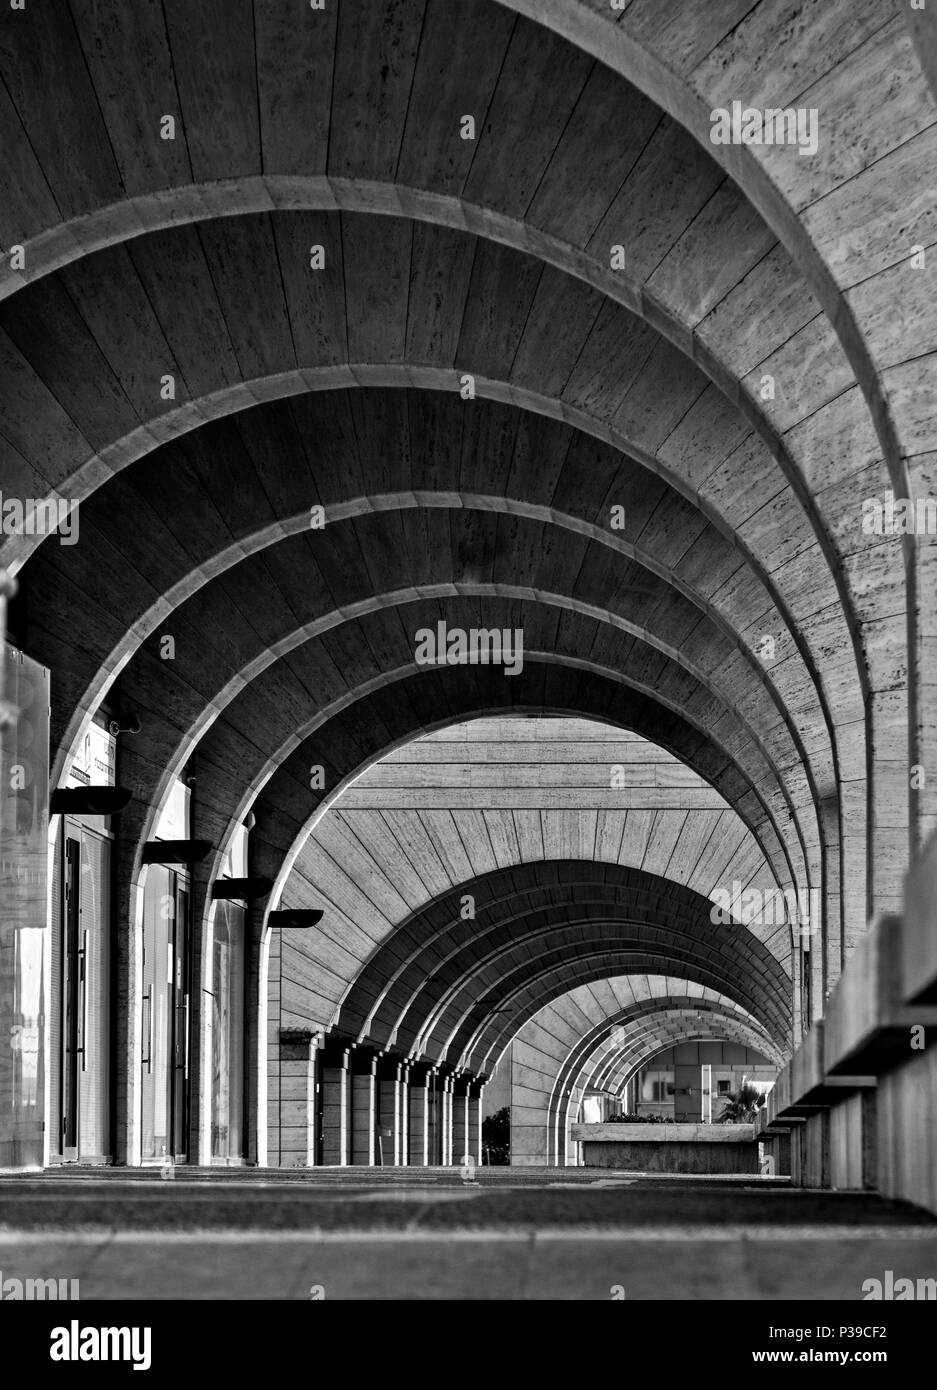 Contemporary architecture archway arcade modern buildingarchitecture photography in black and white